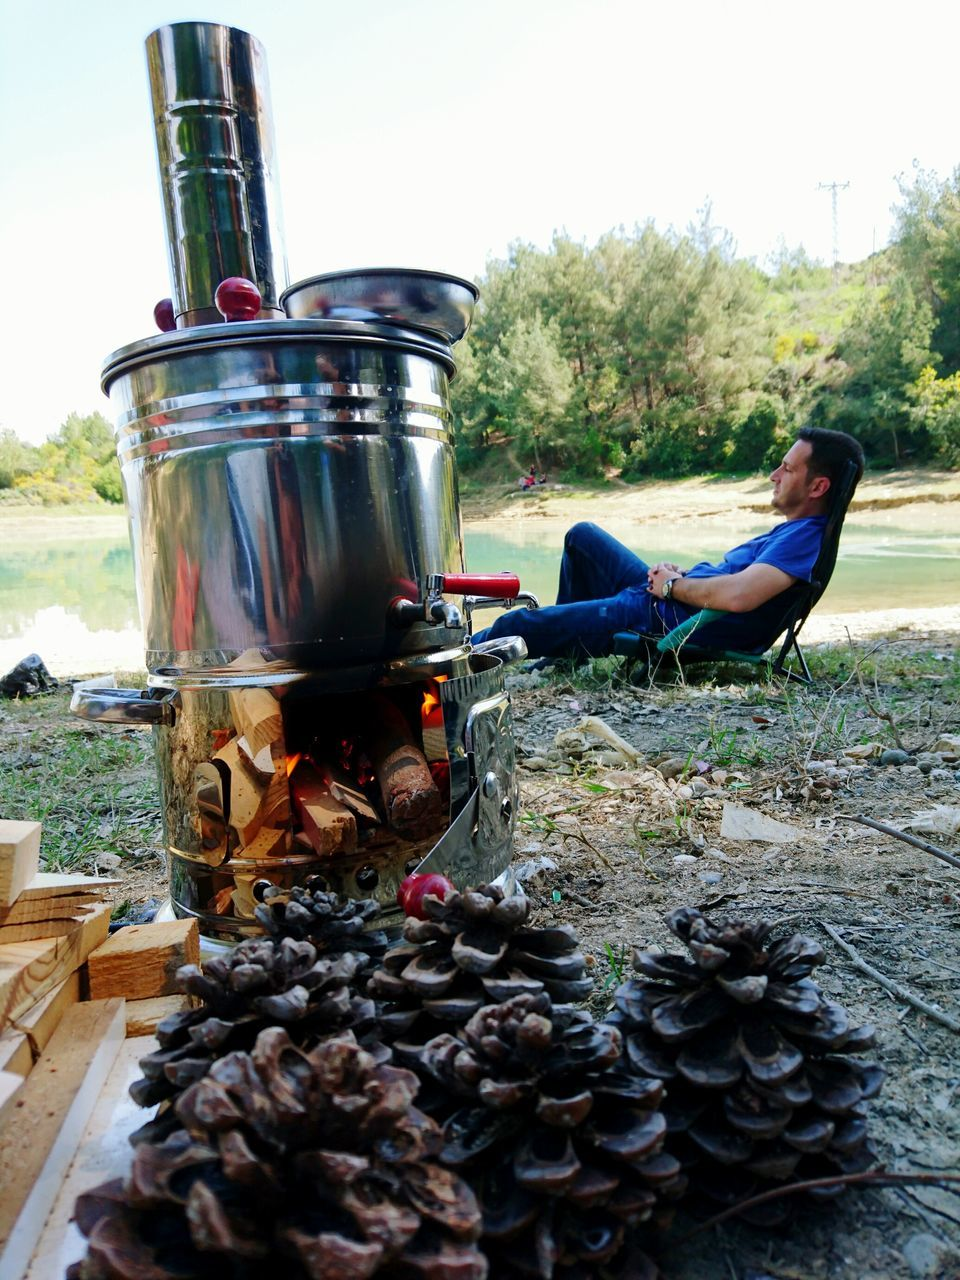 outdoors, day, food, real people, camping stove, one person, close-up